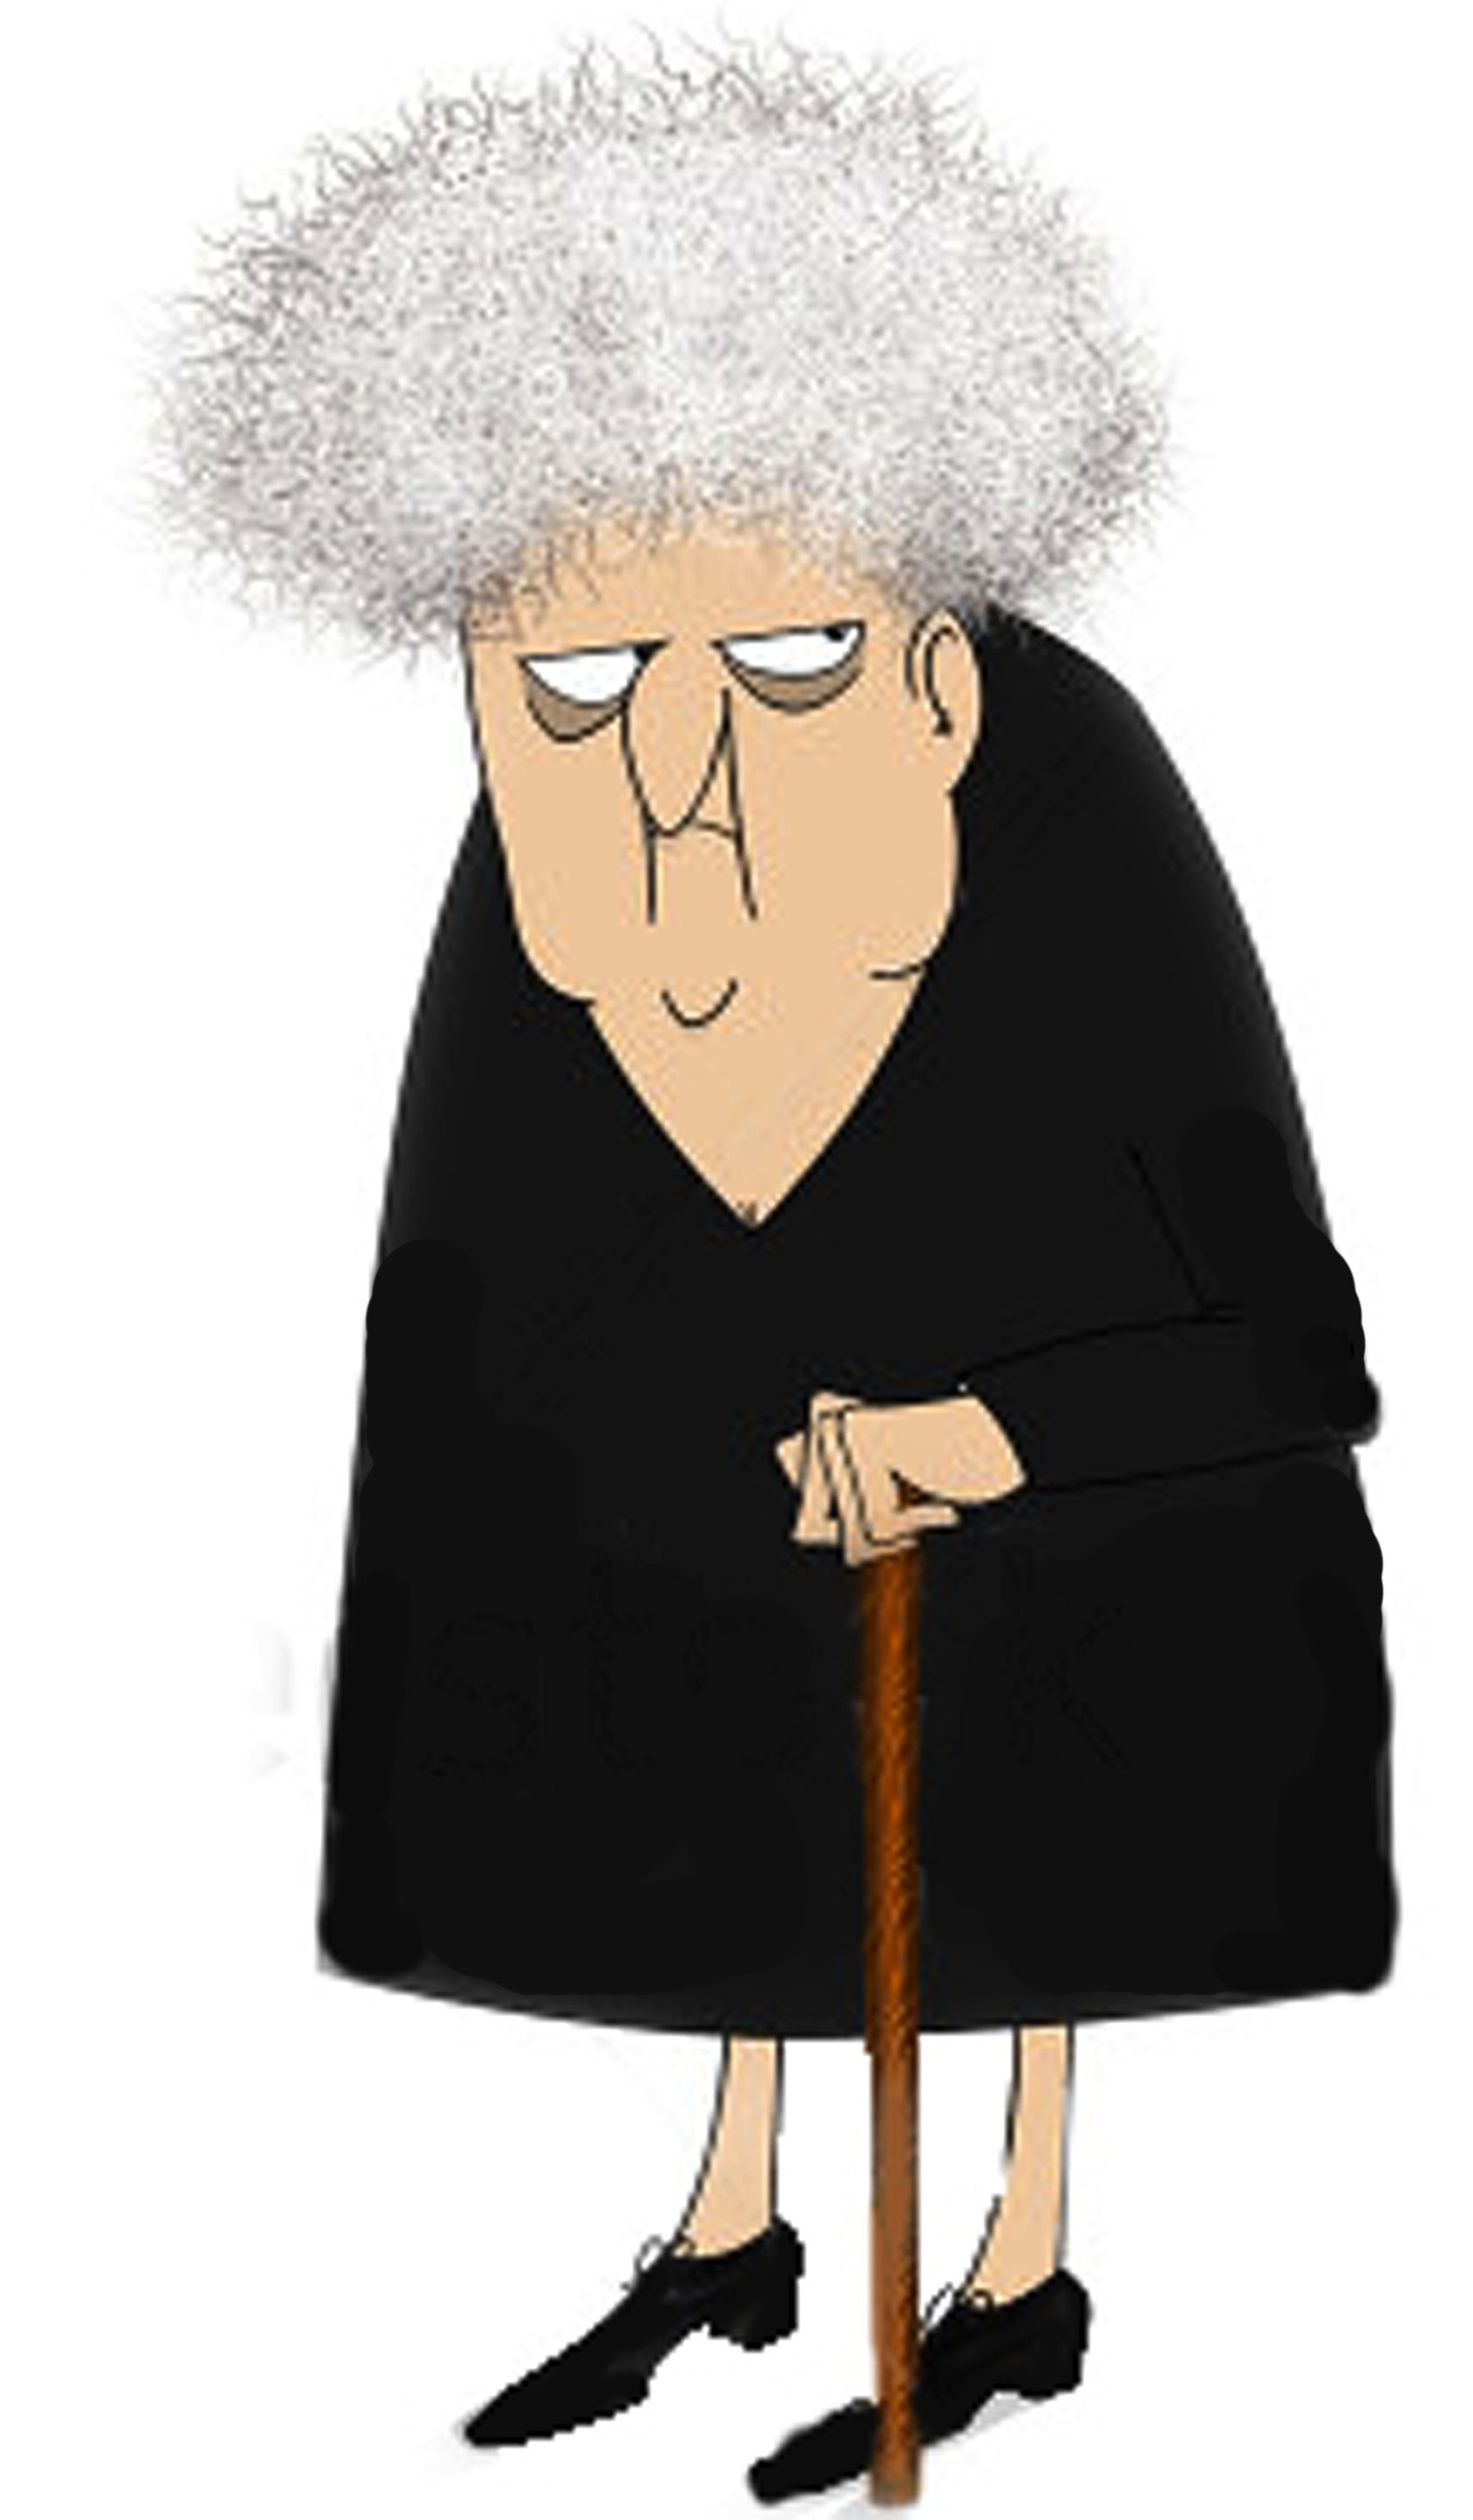 Animated old lady clipart black and white download Cranky Old Lady Clipart - Clipart Kid | backgrounds, clipart, images ... black and white download